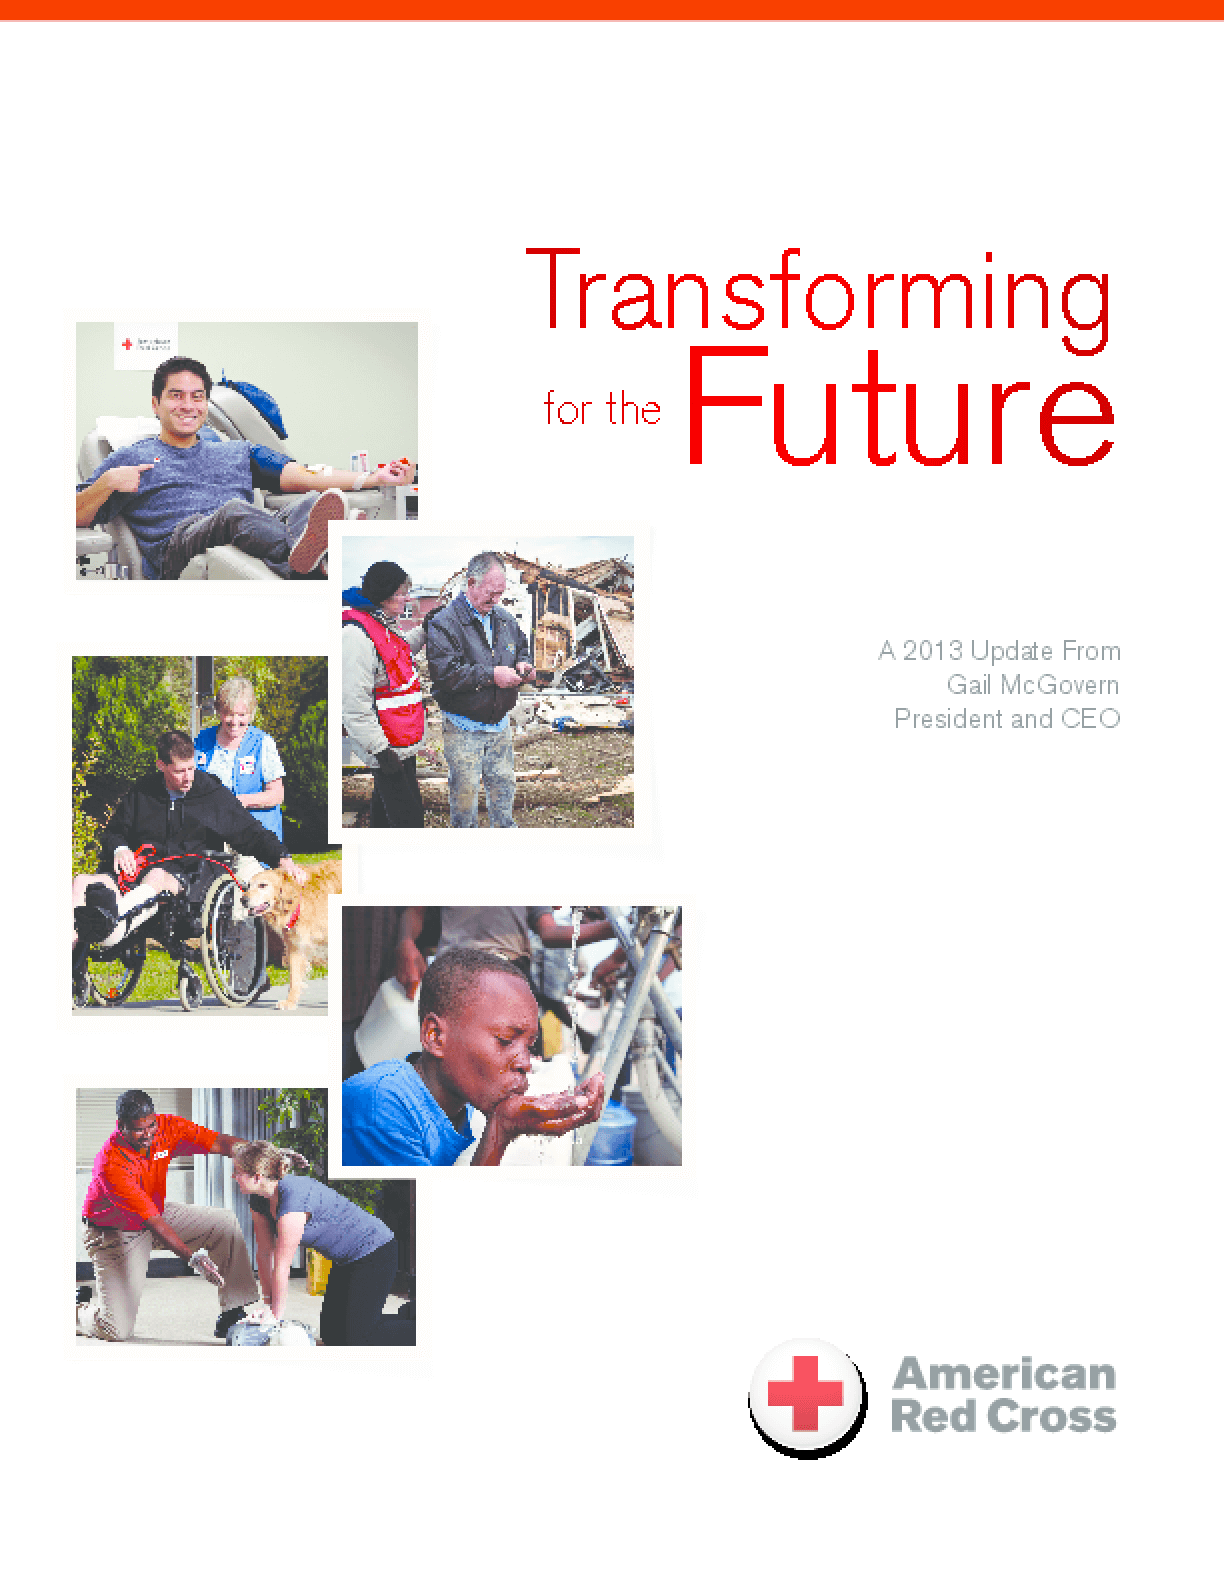 Transforming for the Future: A 2013 Update from Gail McGovern, President and CEO